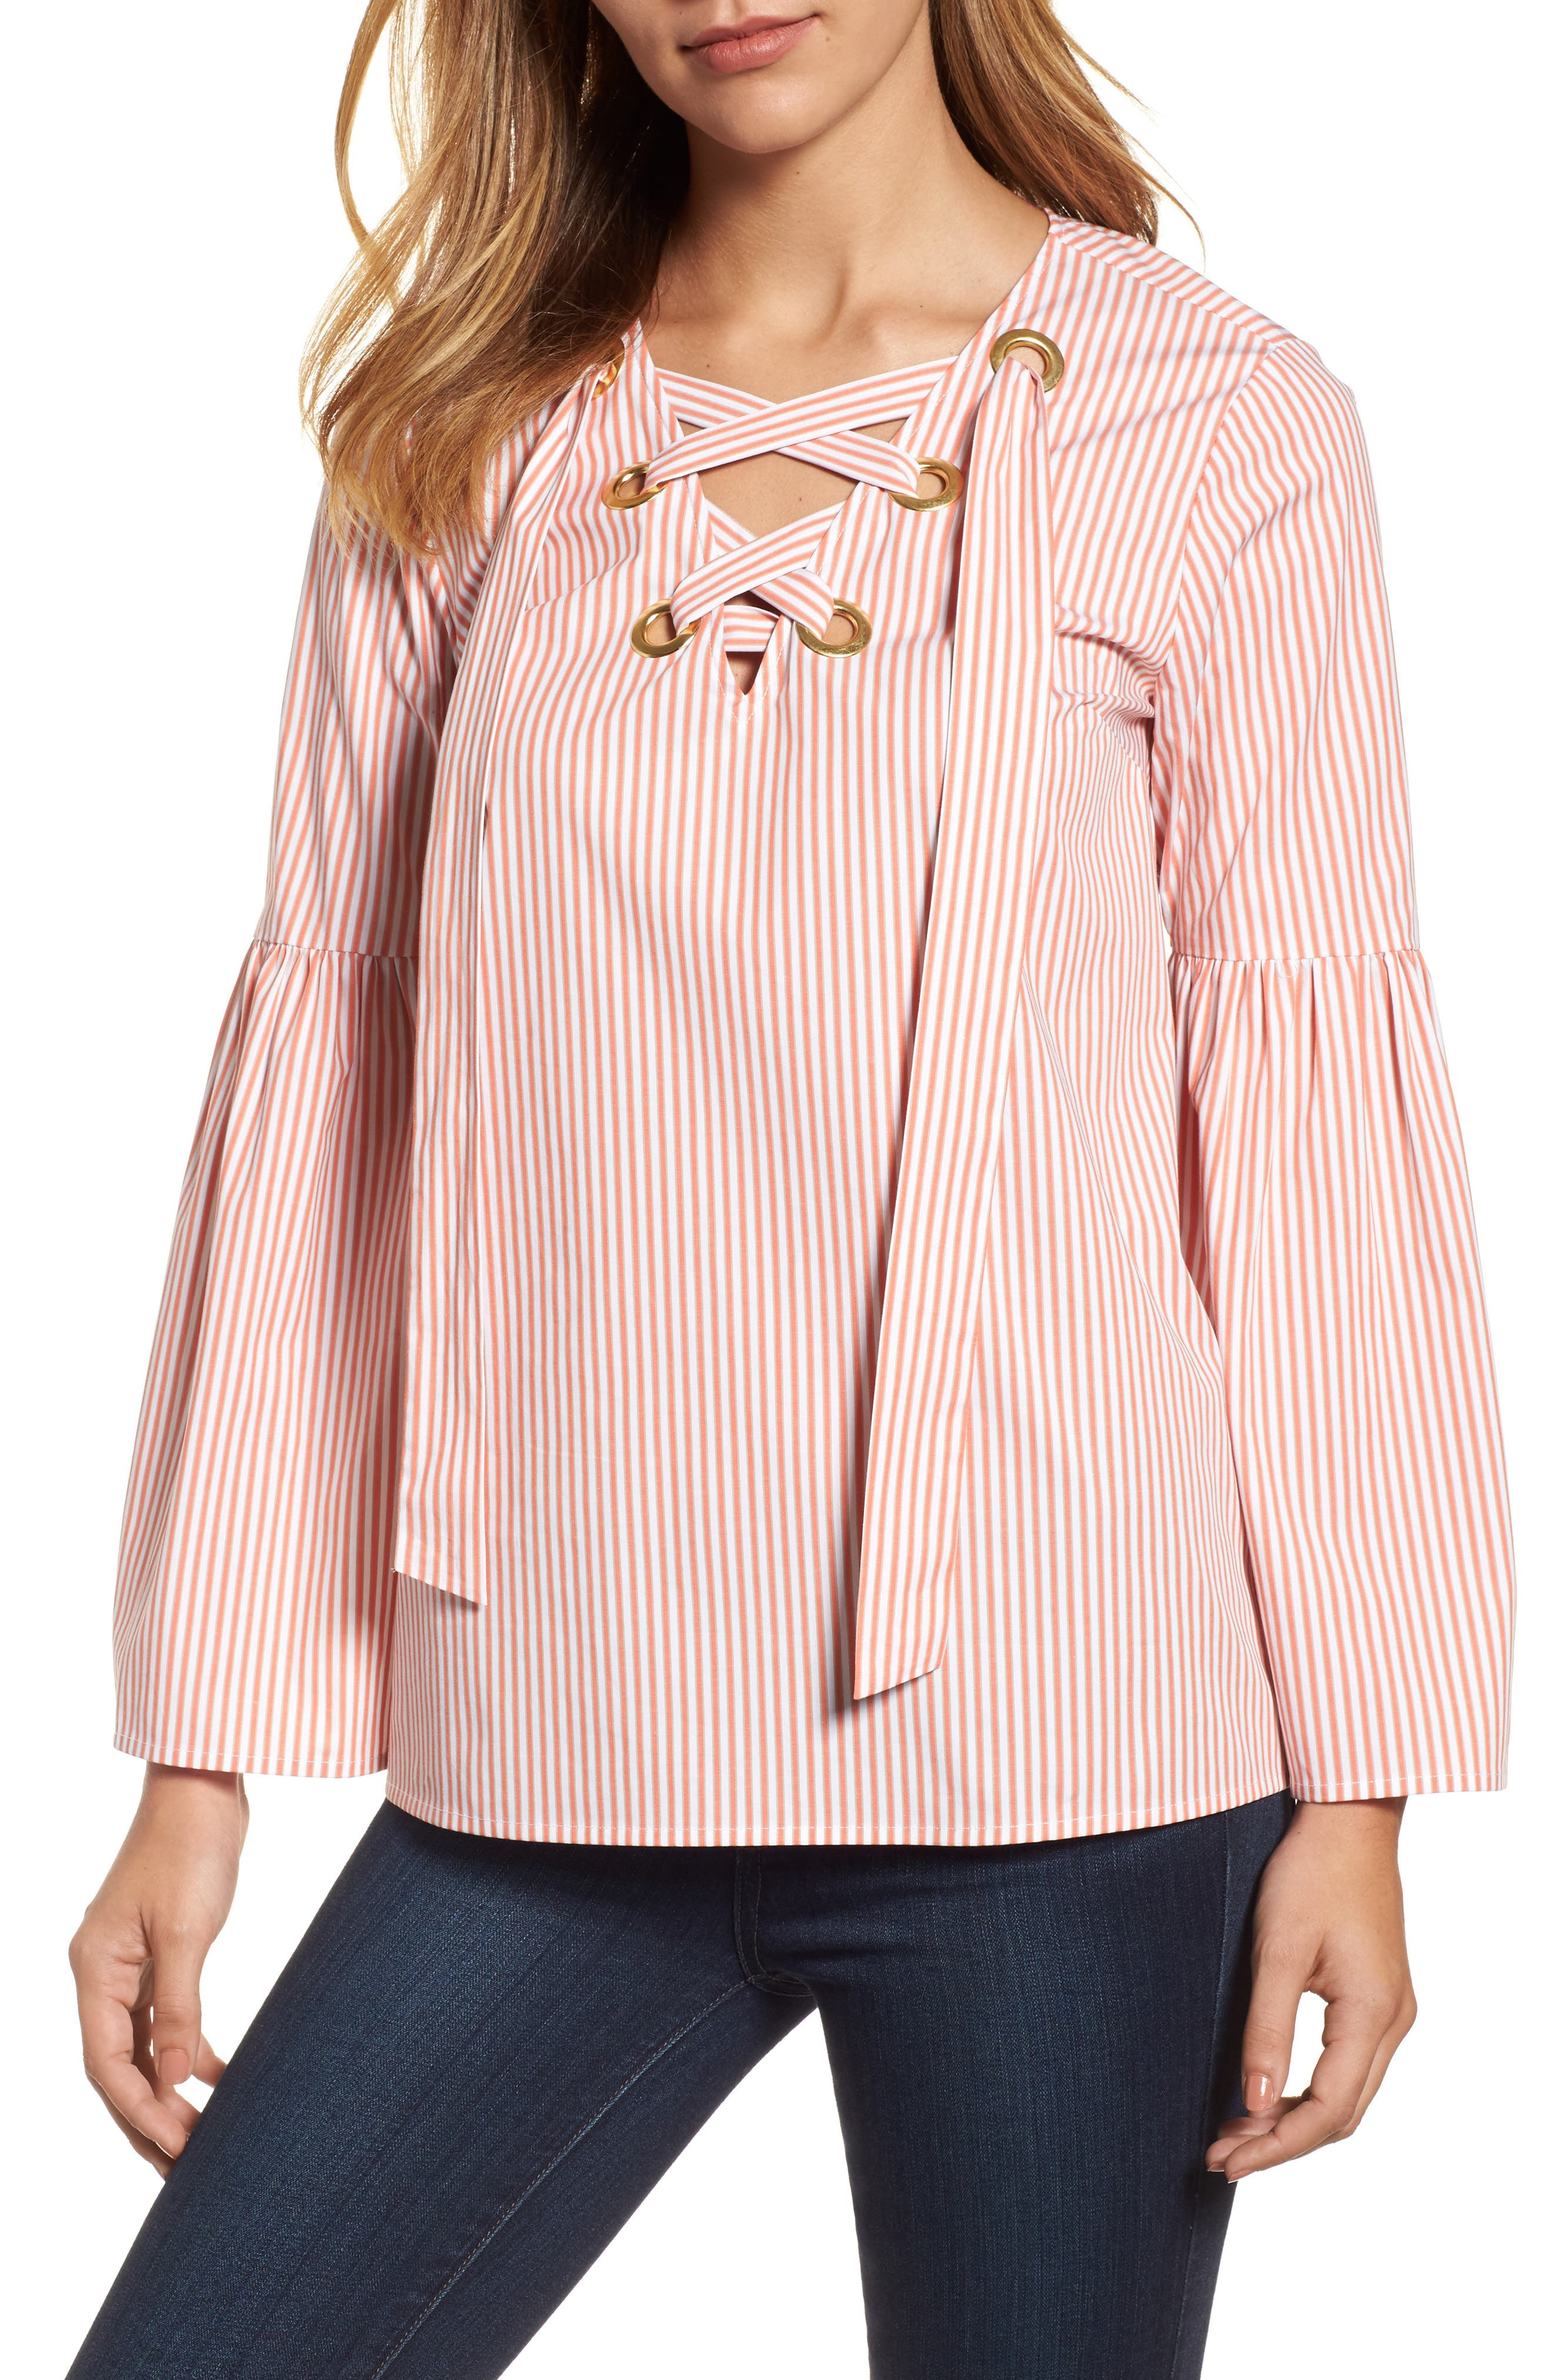 Main Image - MICHAEL Michael Kors Lace-Up Bell Sleeve Top